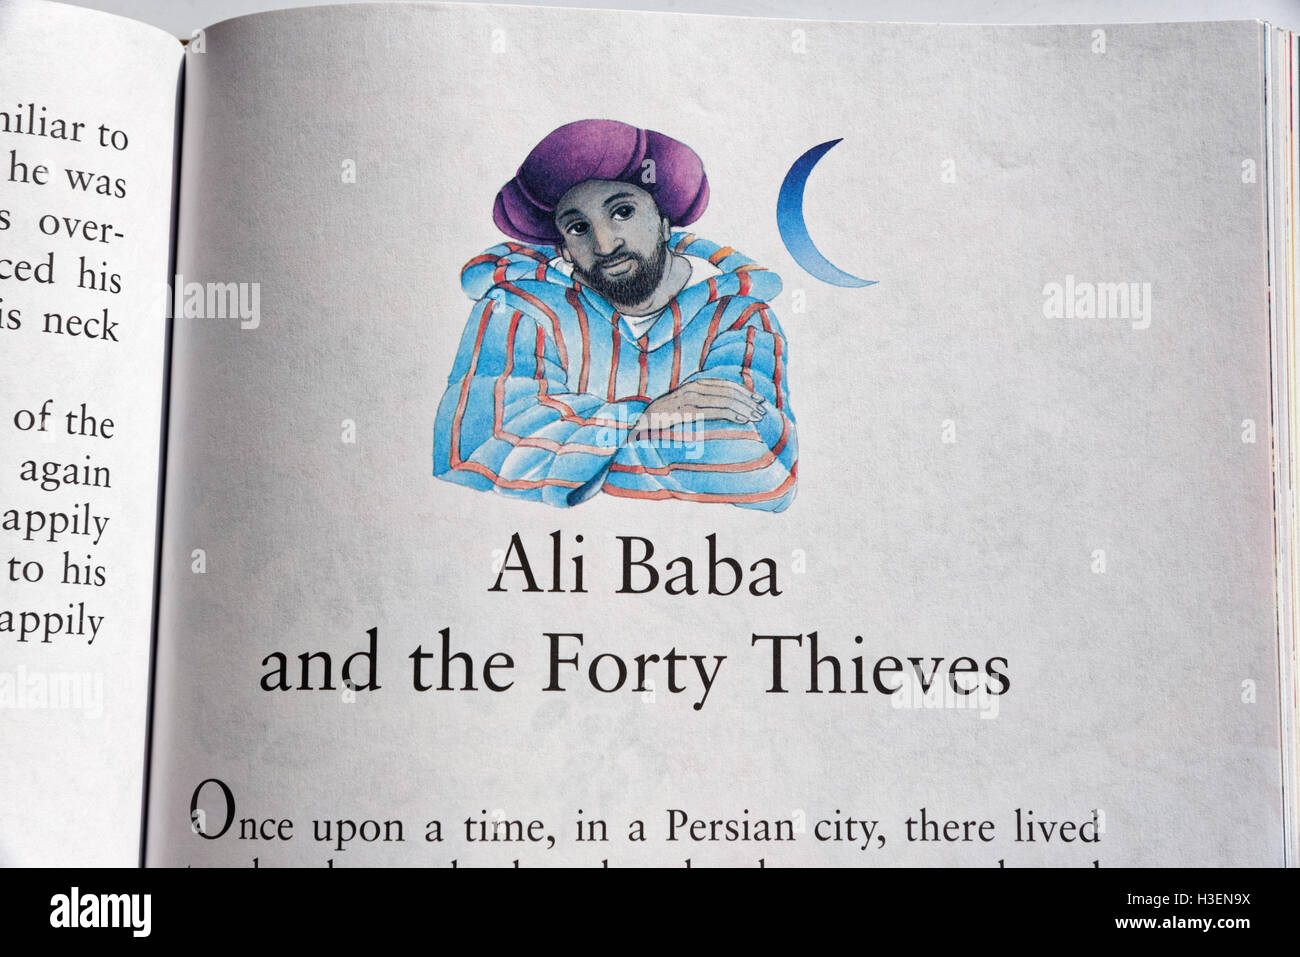 Ali Baba and the Forty Thieves in a book of Fairy Tales - Stock Image